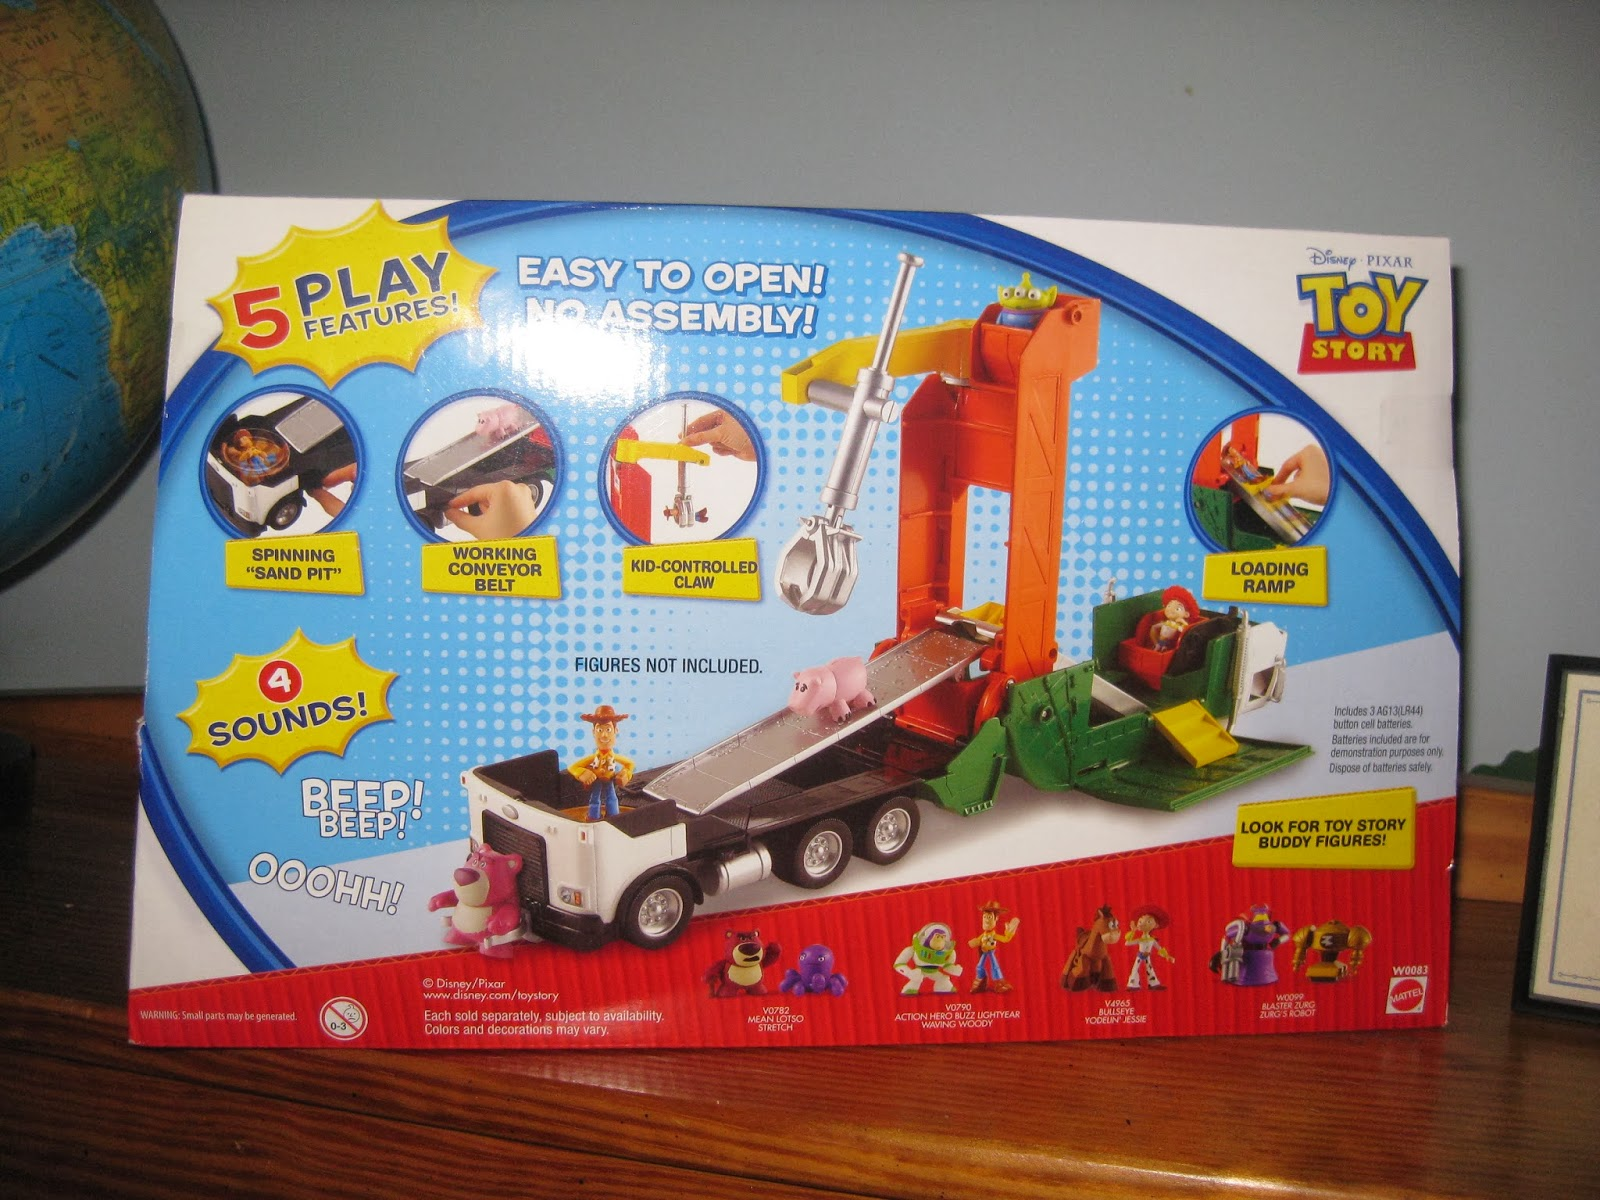 Garbage Toy Story Playset